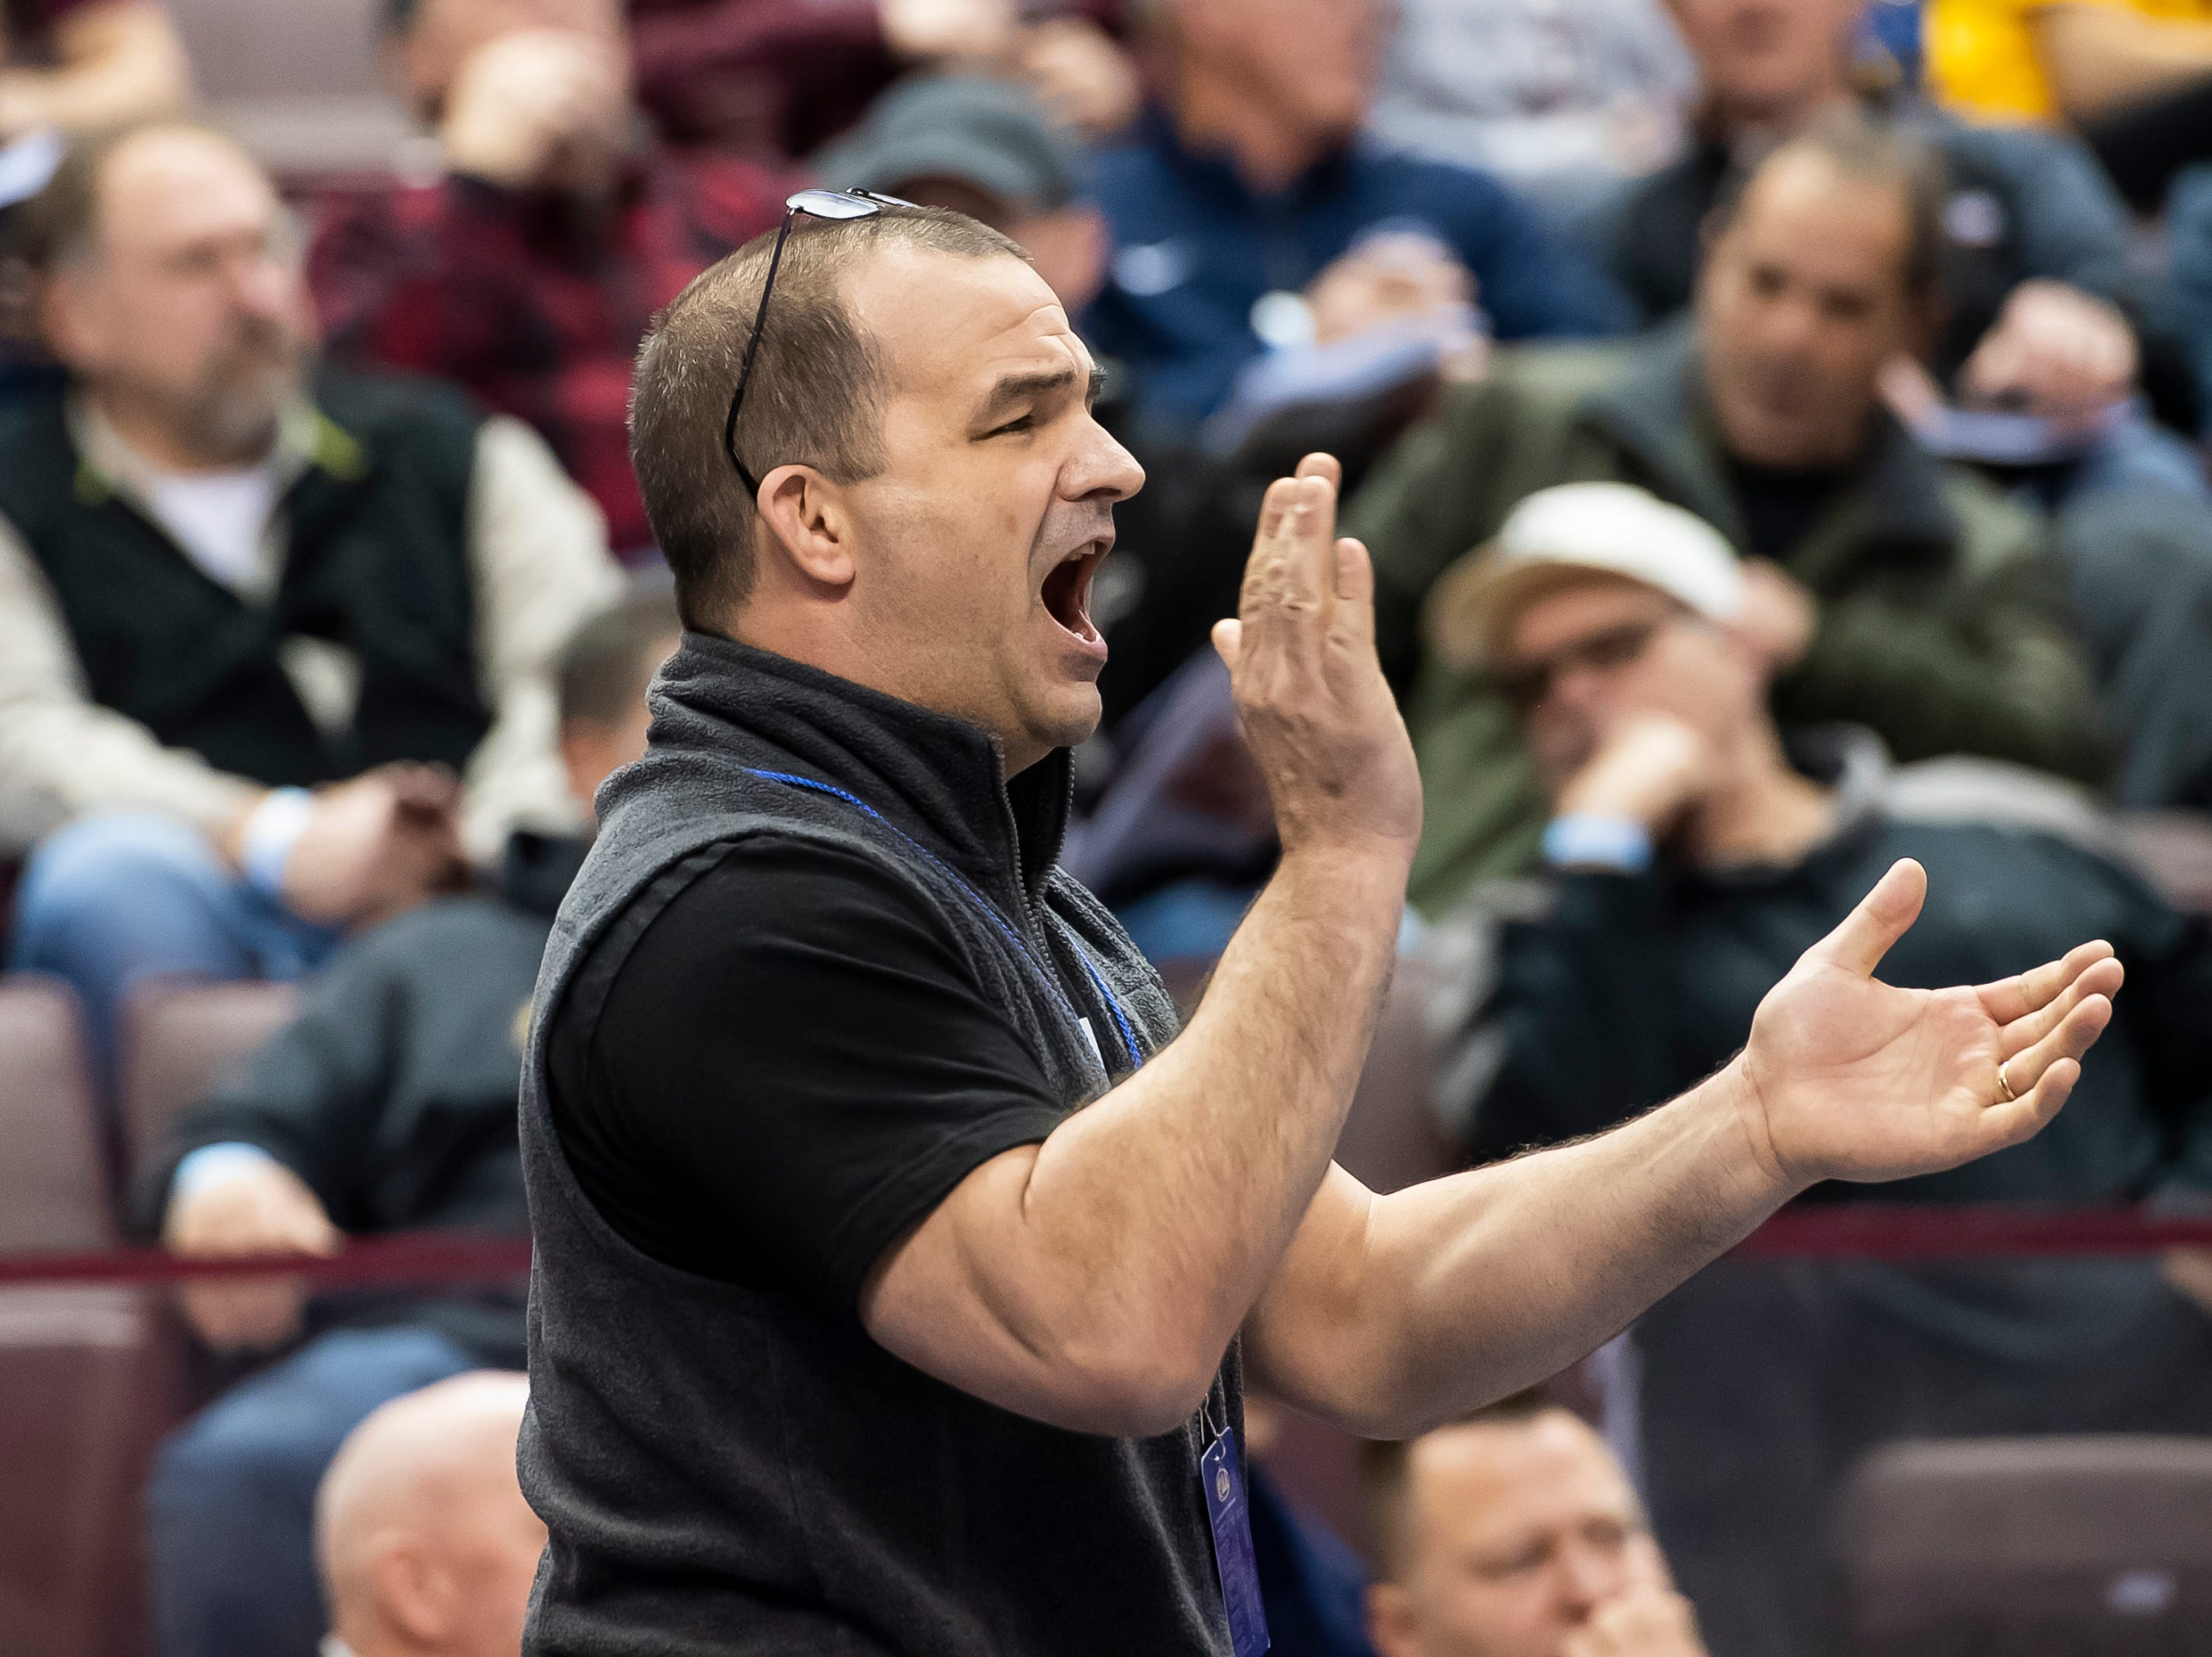 Chambersburg head coach Matt Mentzer claps as Karl Shindledecker defeats Becahi's Matt Mayer during the 3A 113-pound quarterfinal bout at the Giant Center in Hershey Friday, March 8, 2019. Shindledecker won a 3-2 decision.